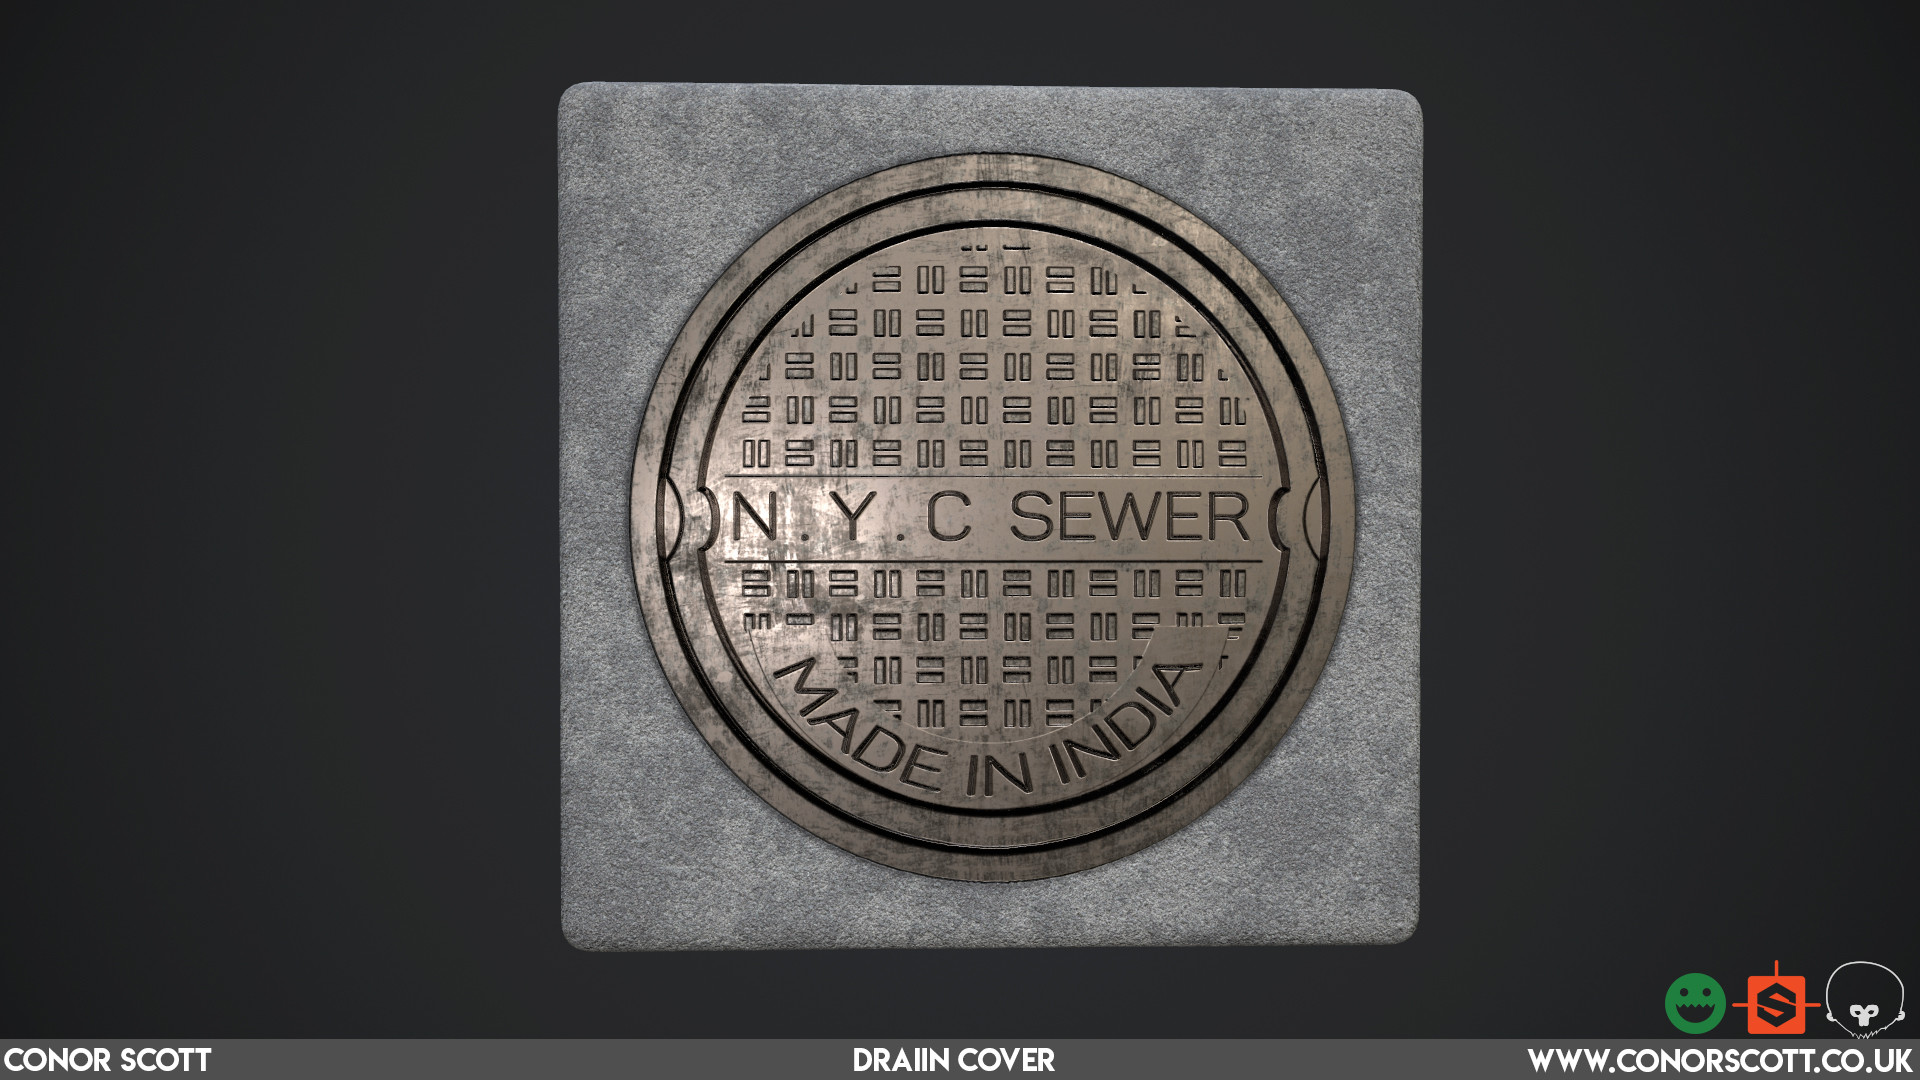 Conor scott draincover1